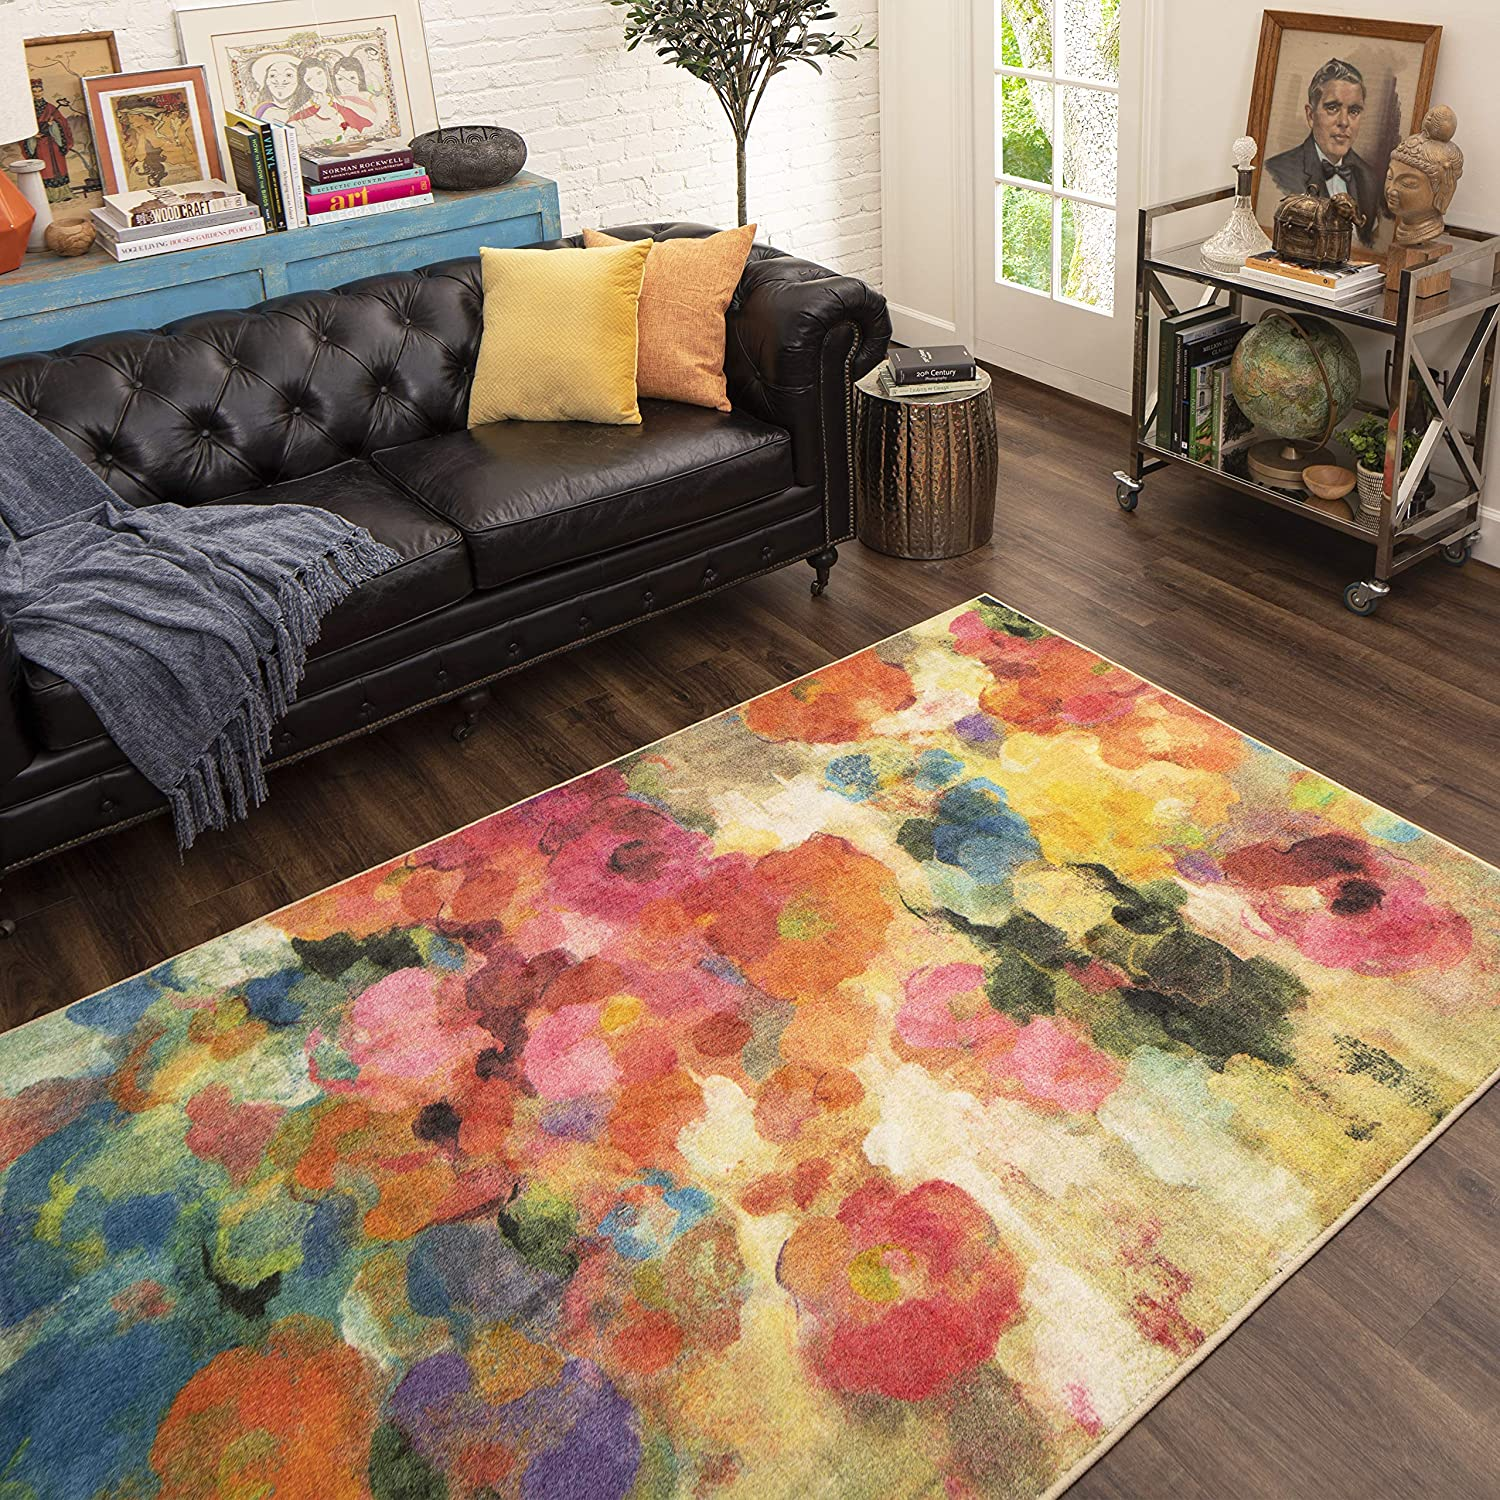 Mohawk Home Blurred Blossoms Area Rug, 8'x10', Multicolor